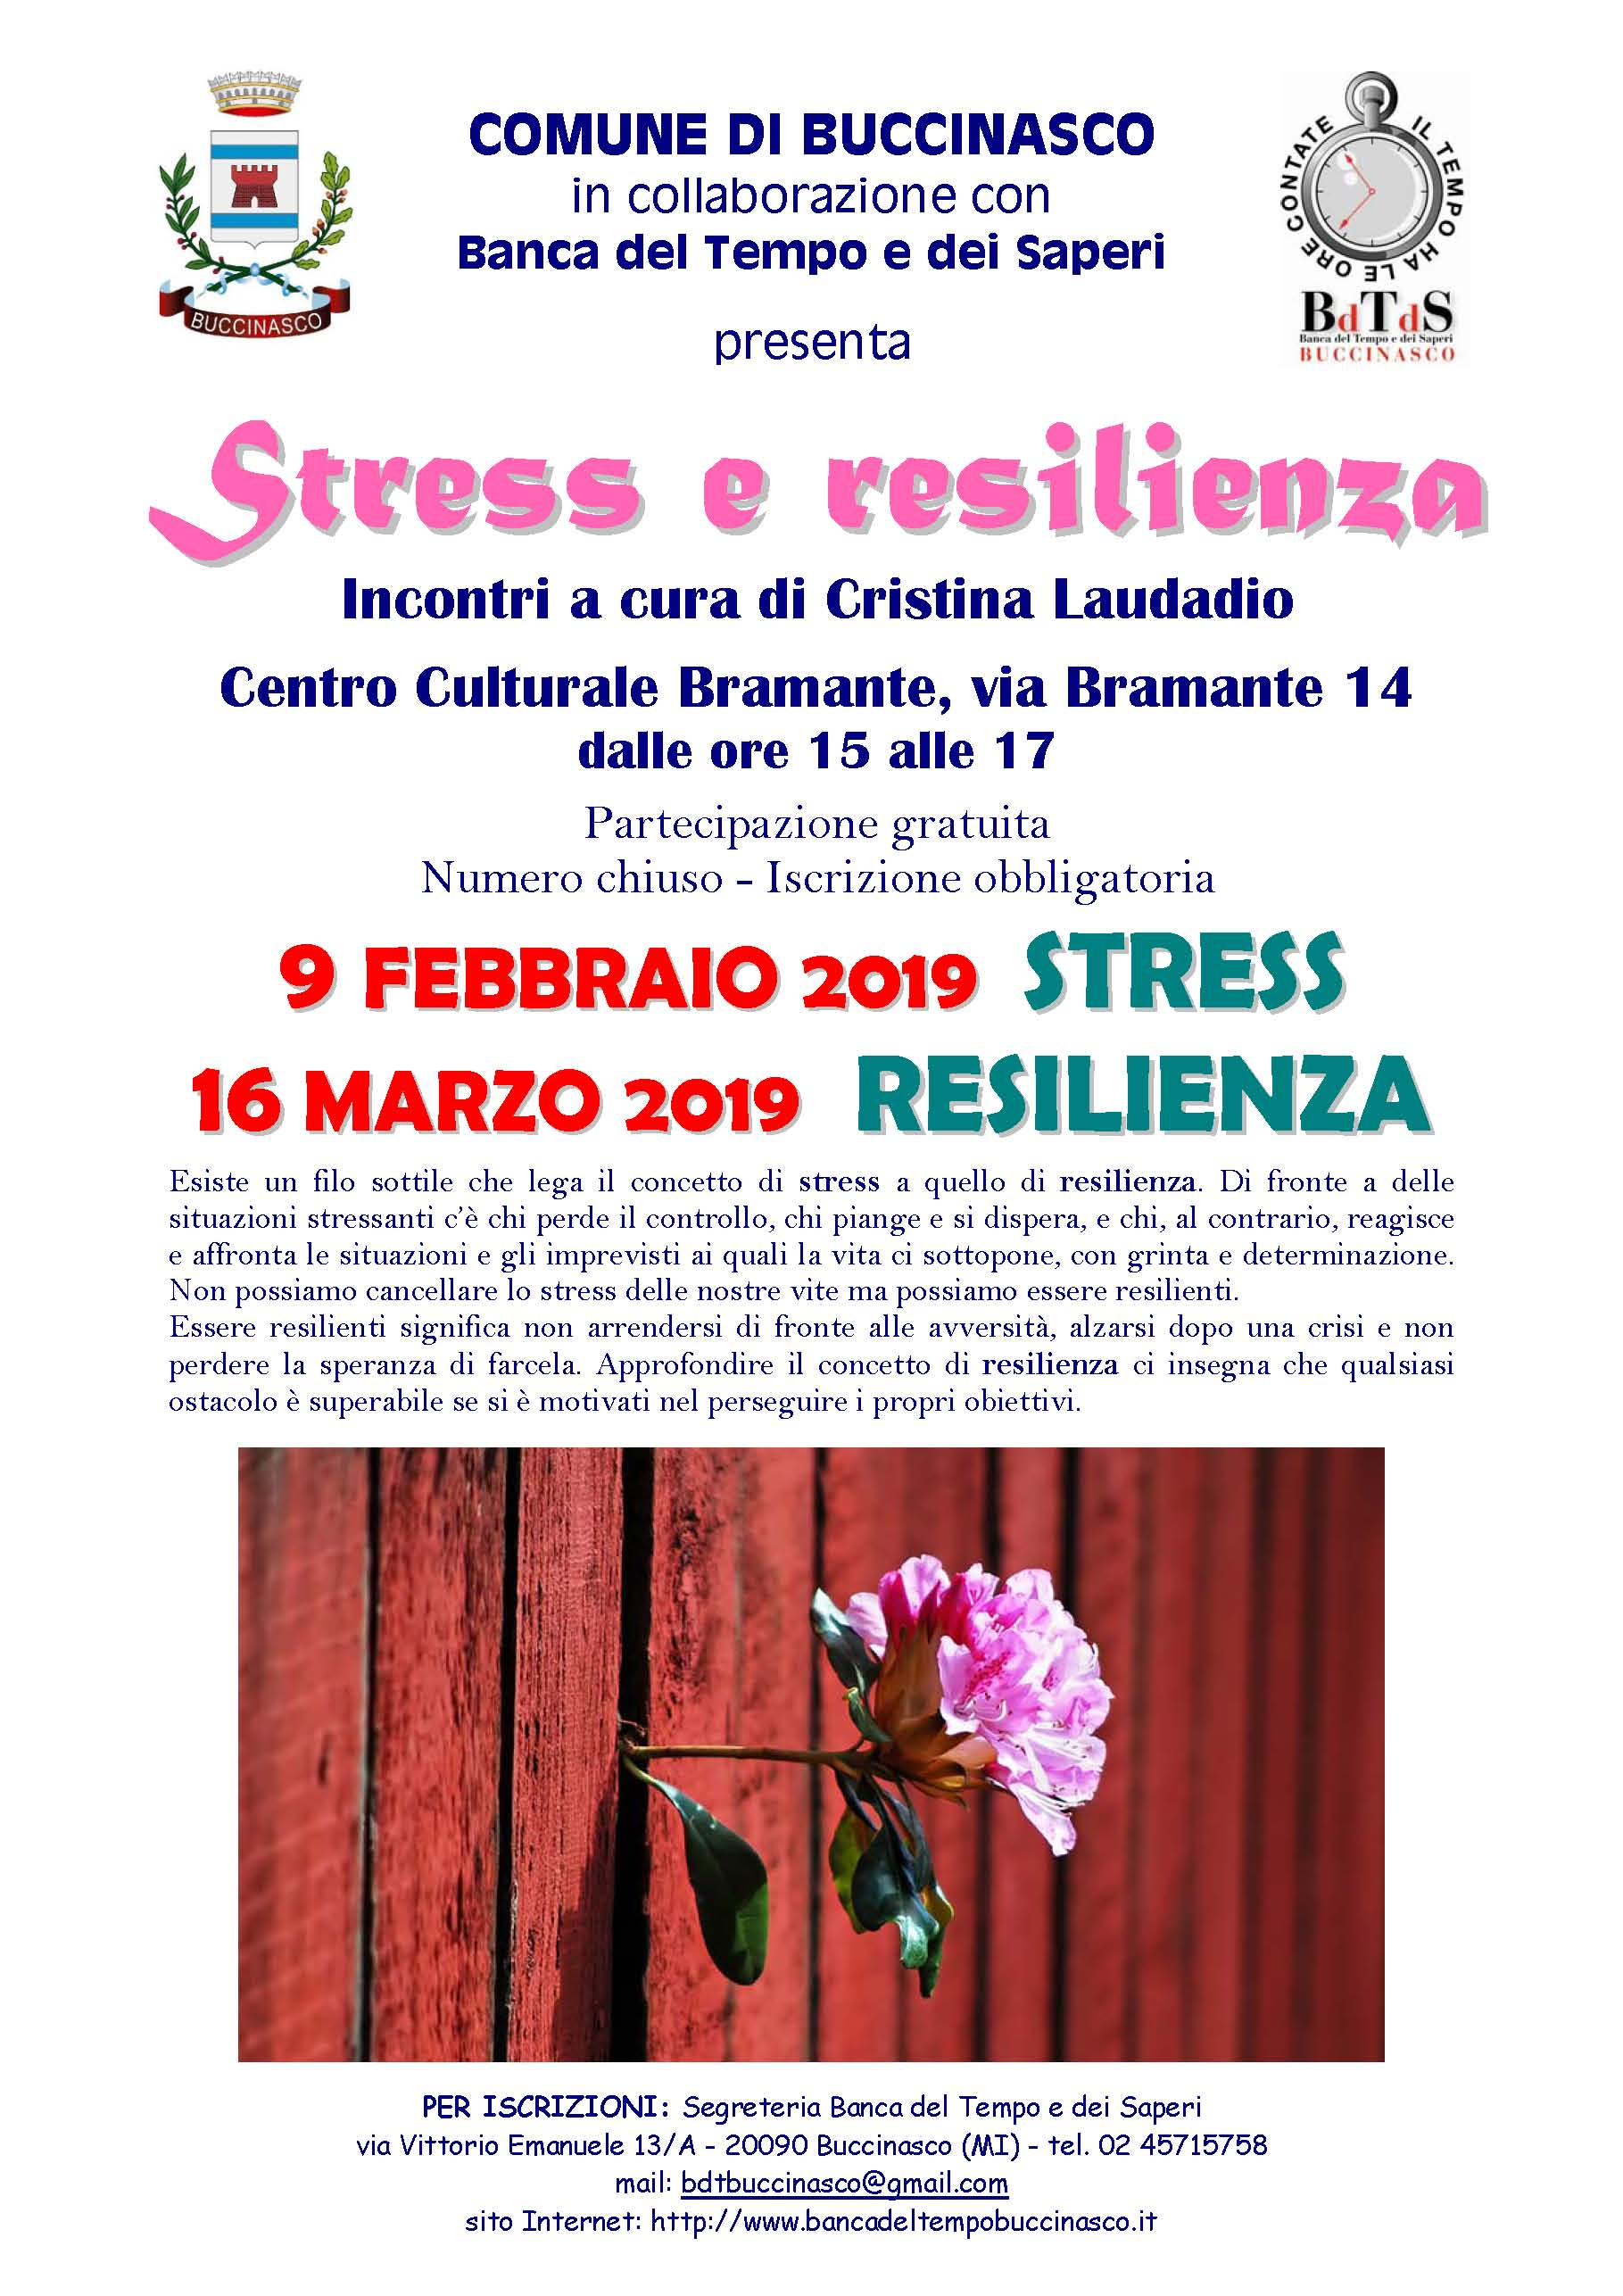 Stress e resilienza 9feb e 16mar19